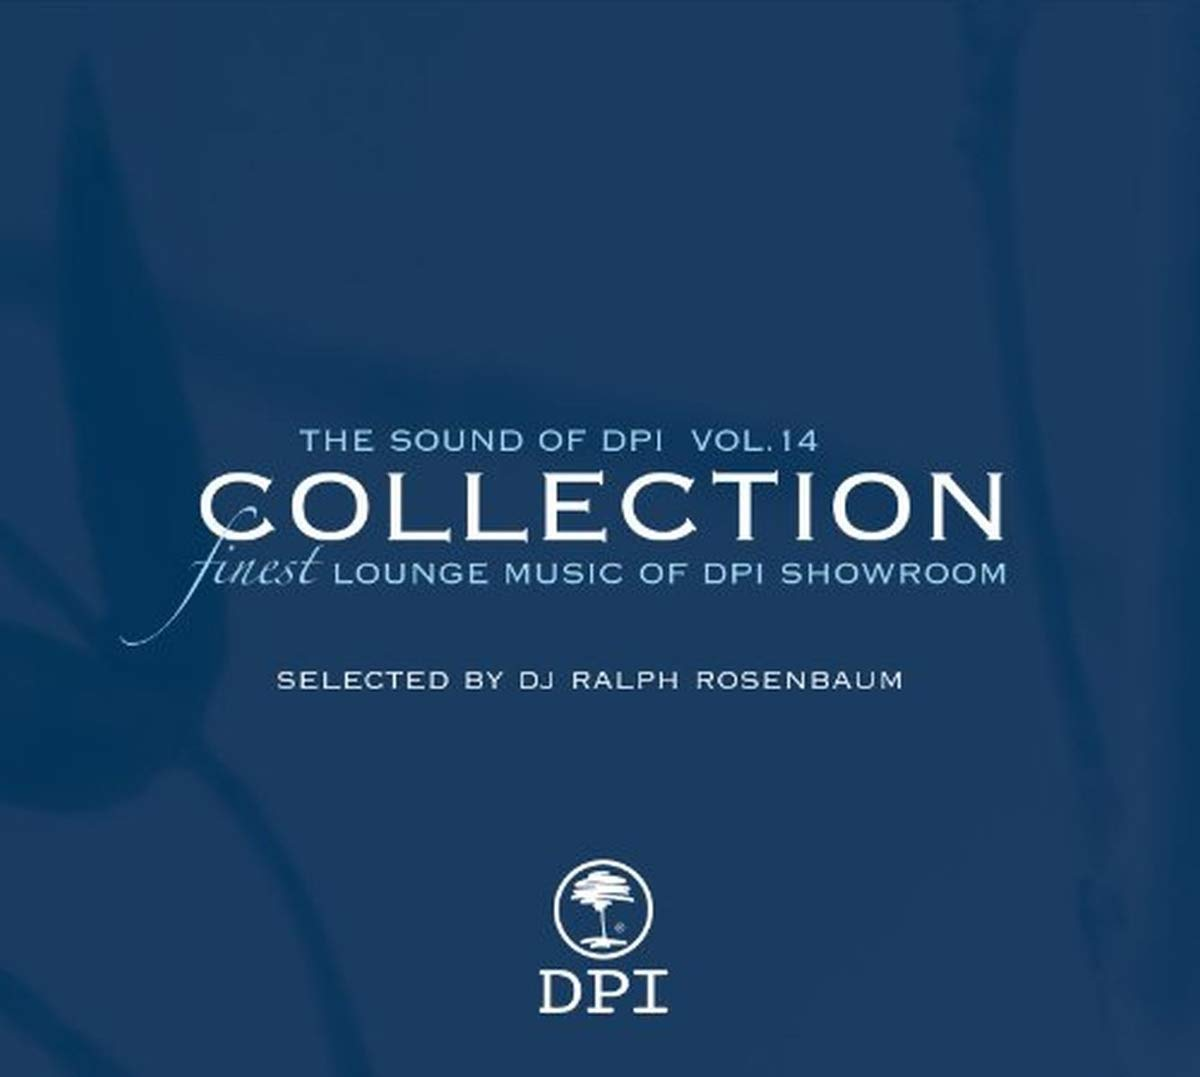 Dpi Collection Vol.14 B006CCCWN8